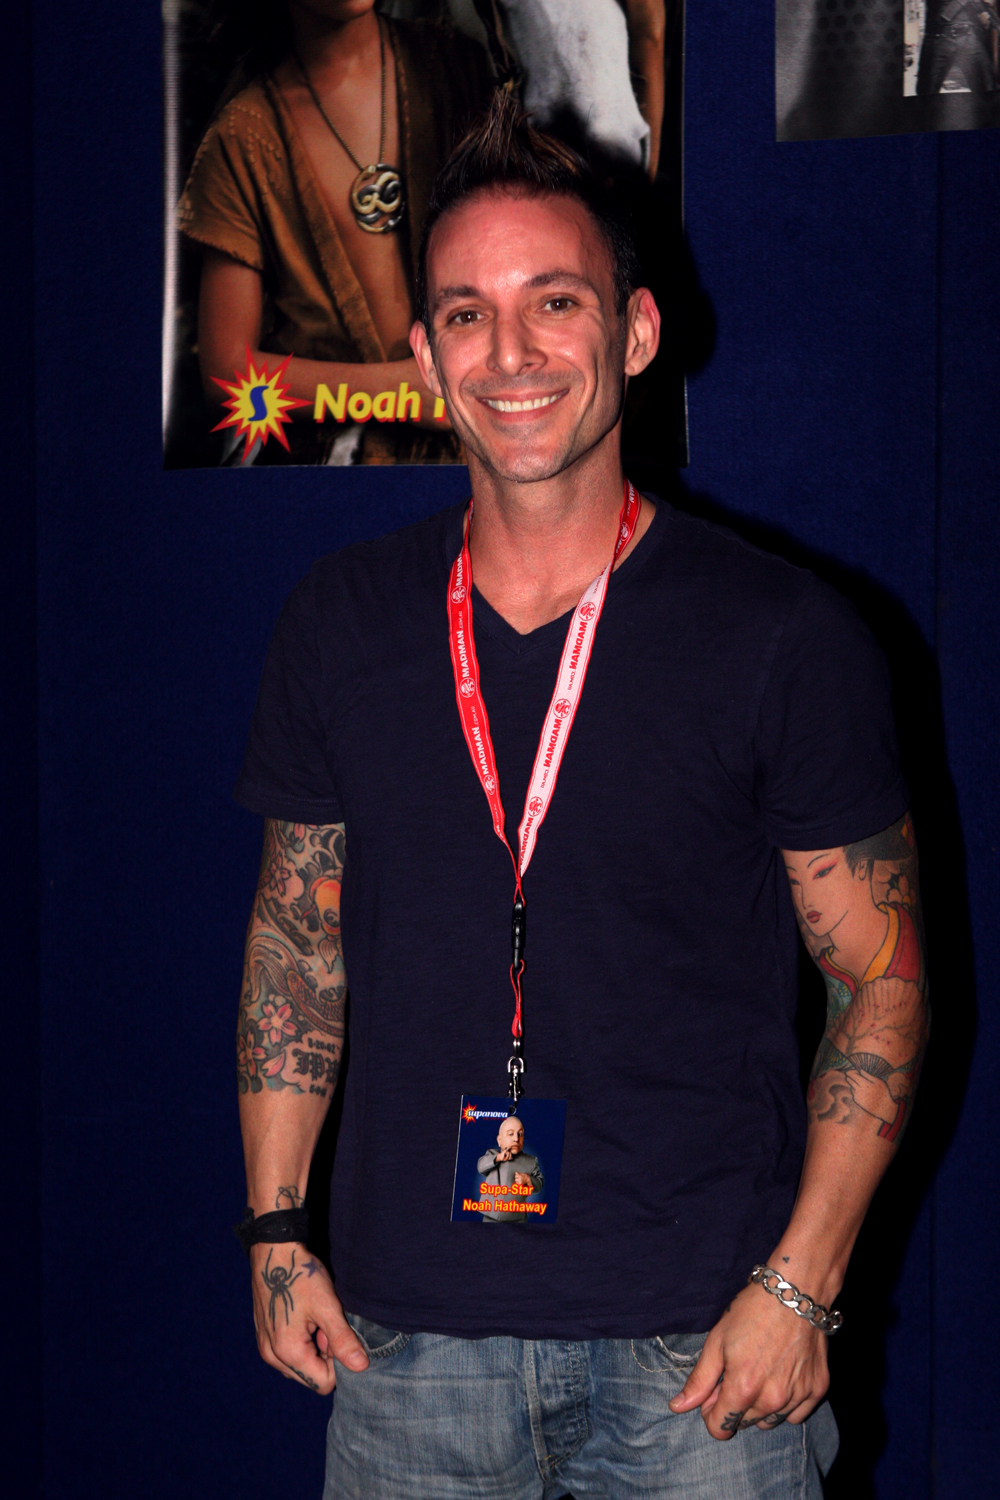 Noah Hathaway - Wikipedia, the free encyclopedia